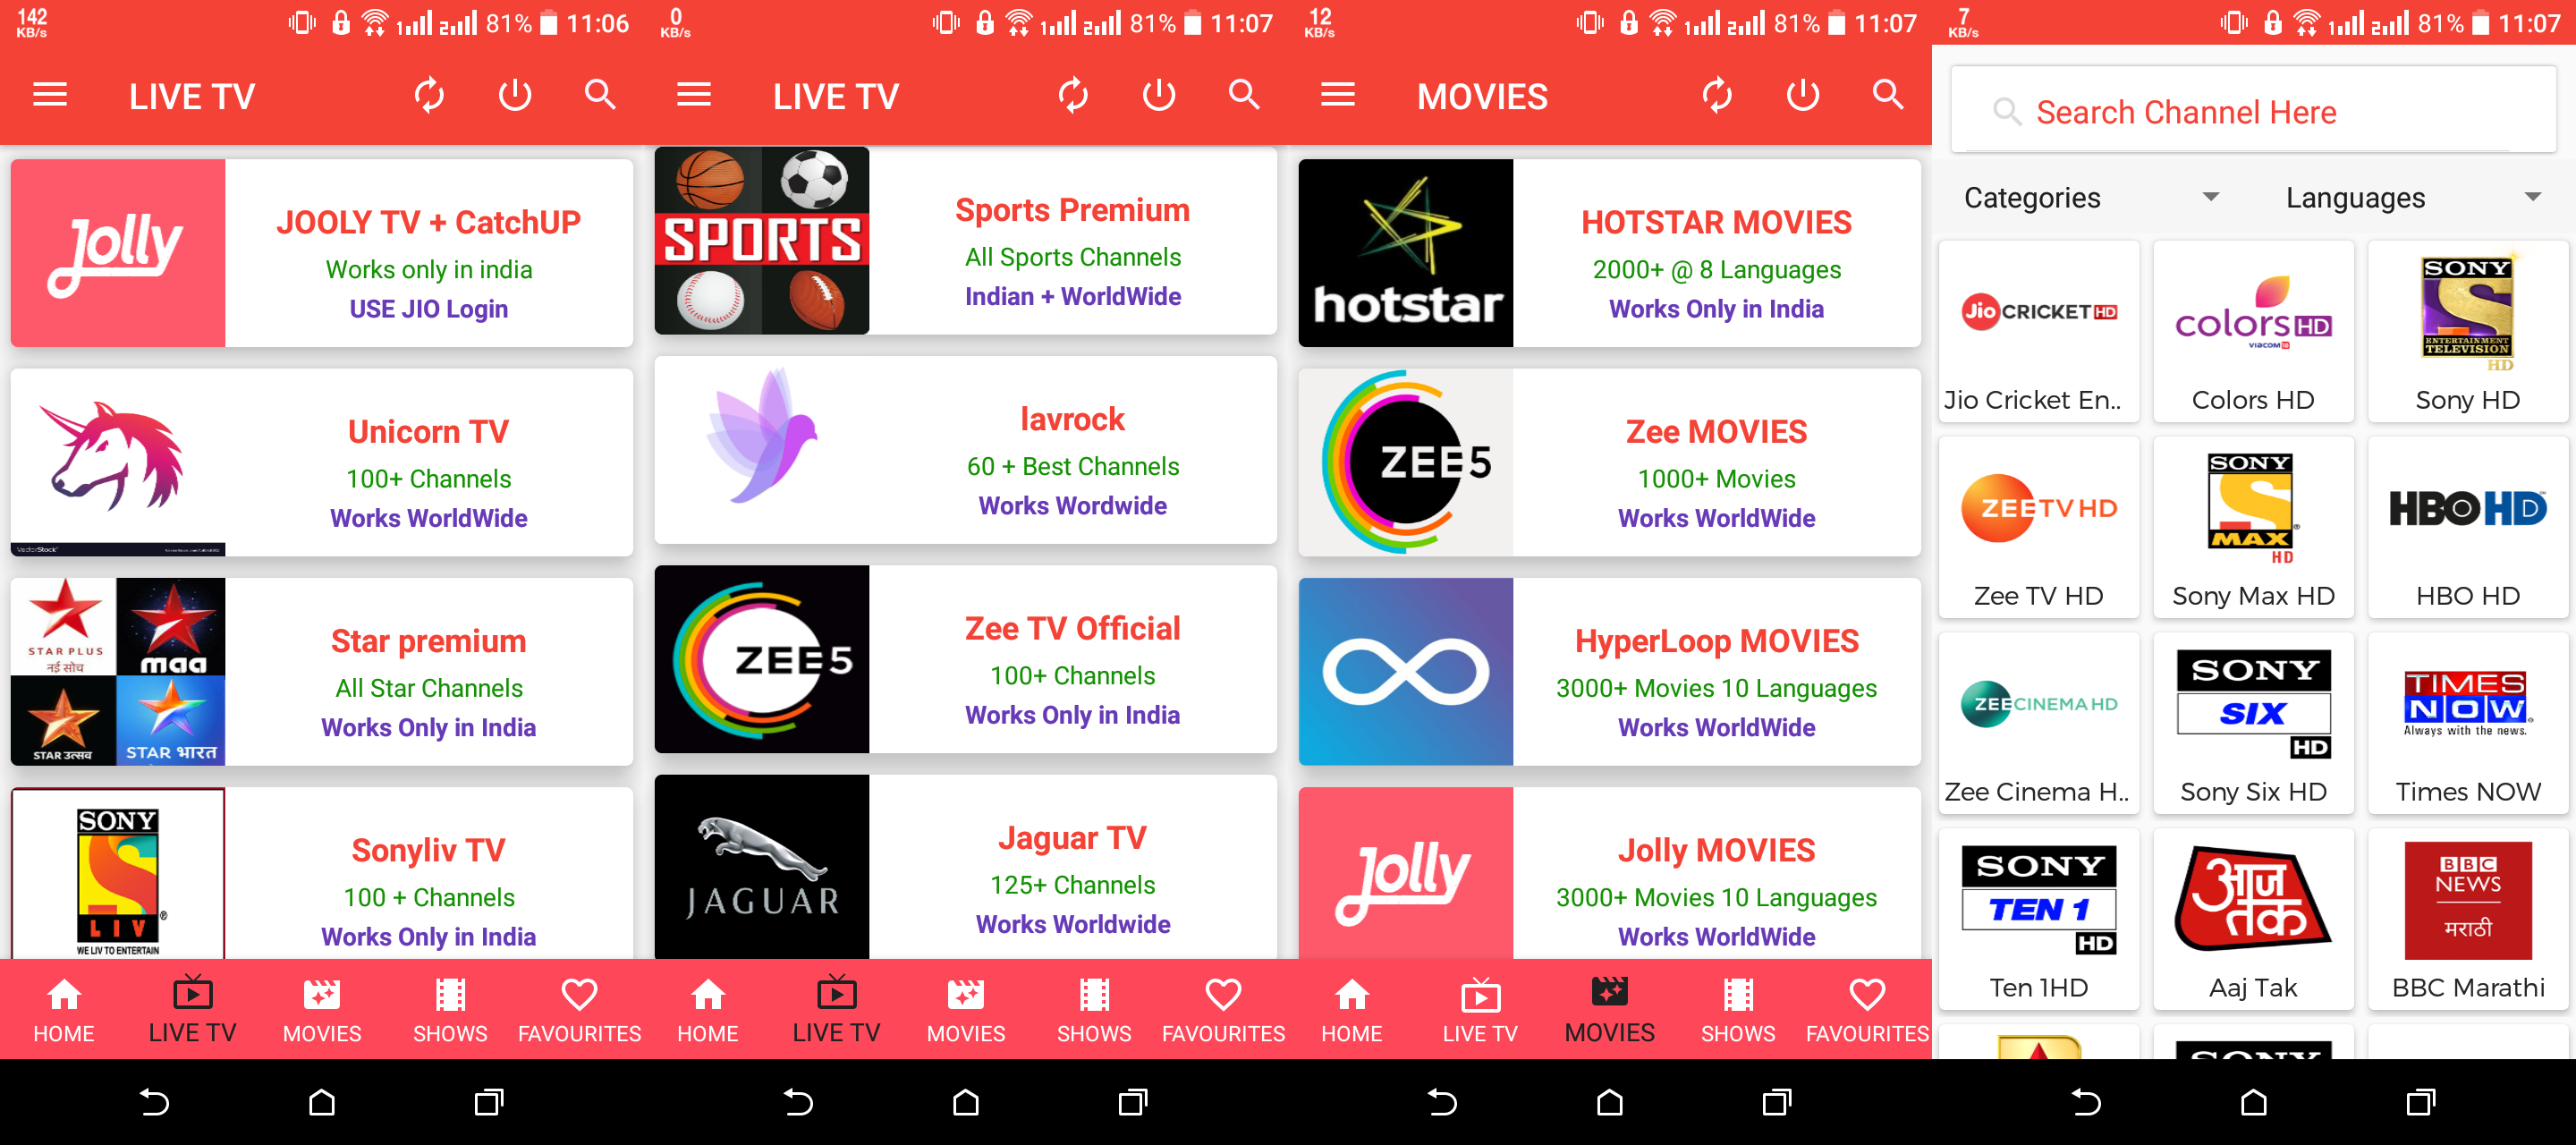 OREO TV APK V1.8.3 ForAndroid [Latest] 1